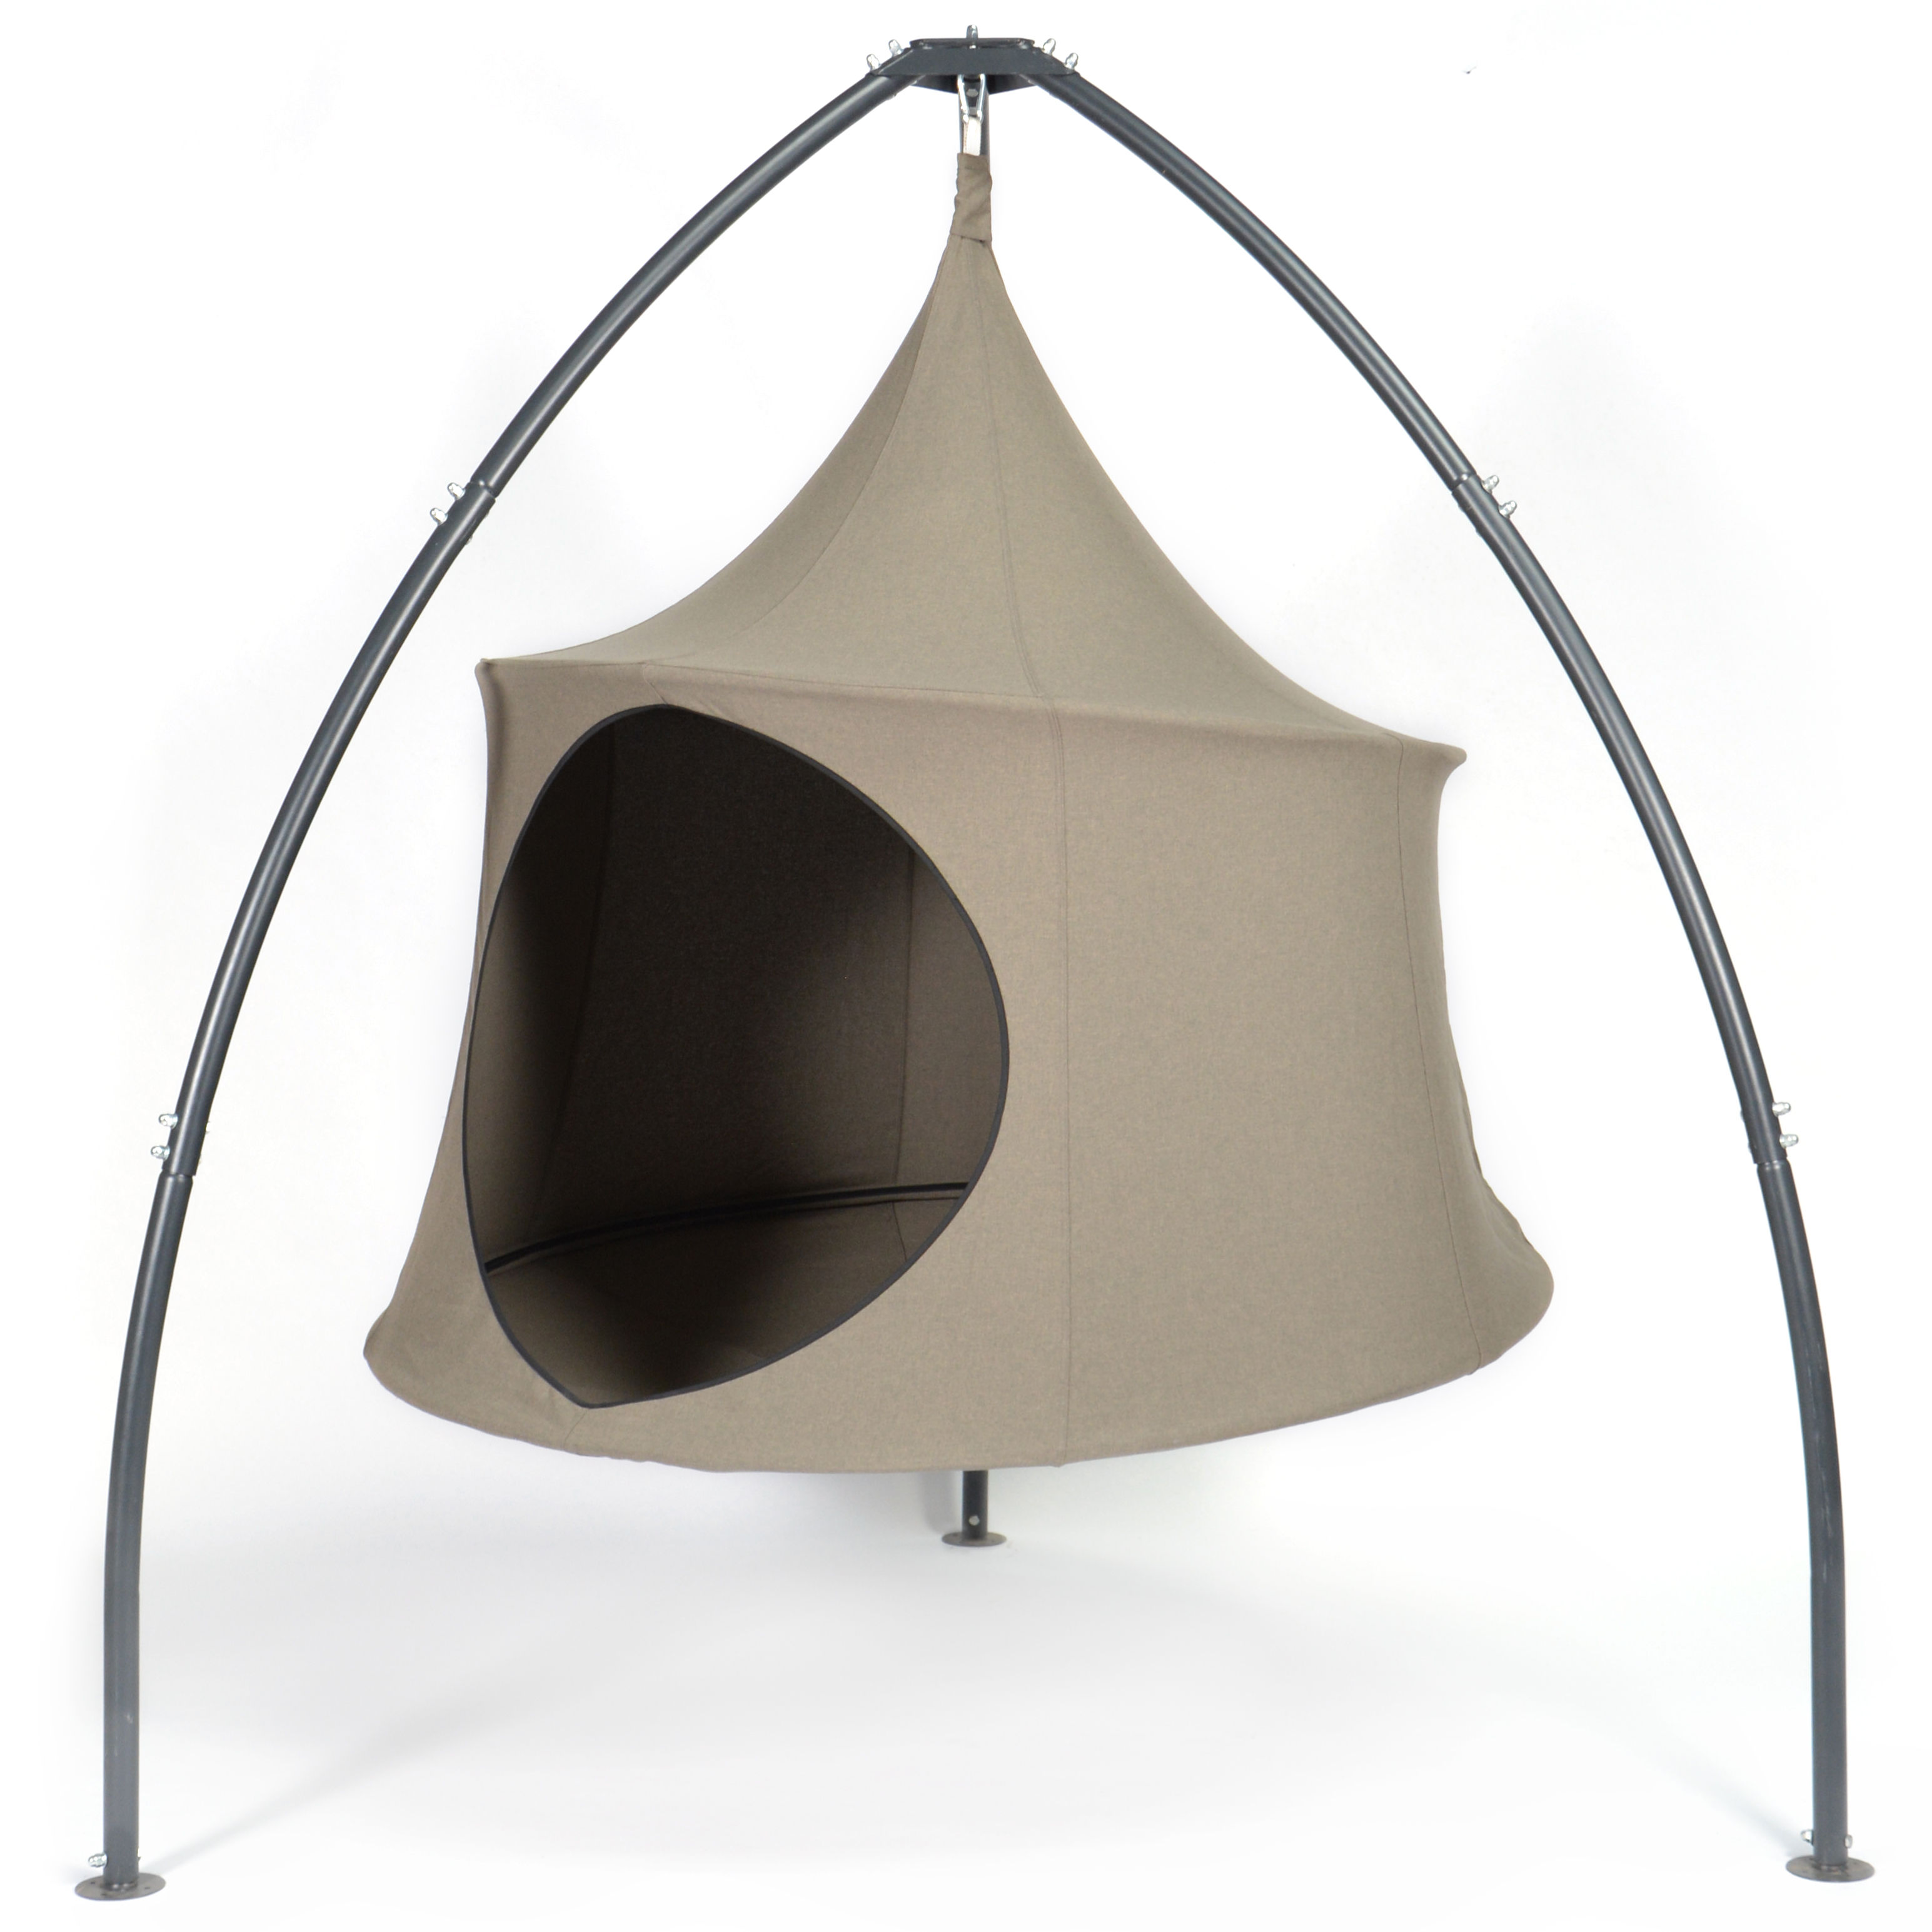 Outdoor - Sun Loungers & Hammocks - Domo Hanging armchair - / Tent - Ø 180 cm - 2 people by Cacoon - Earth -  Toile Olefin